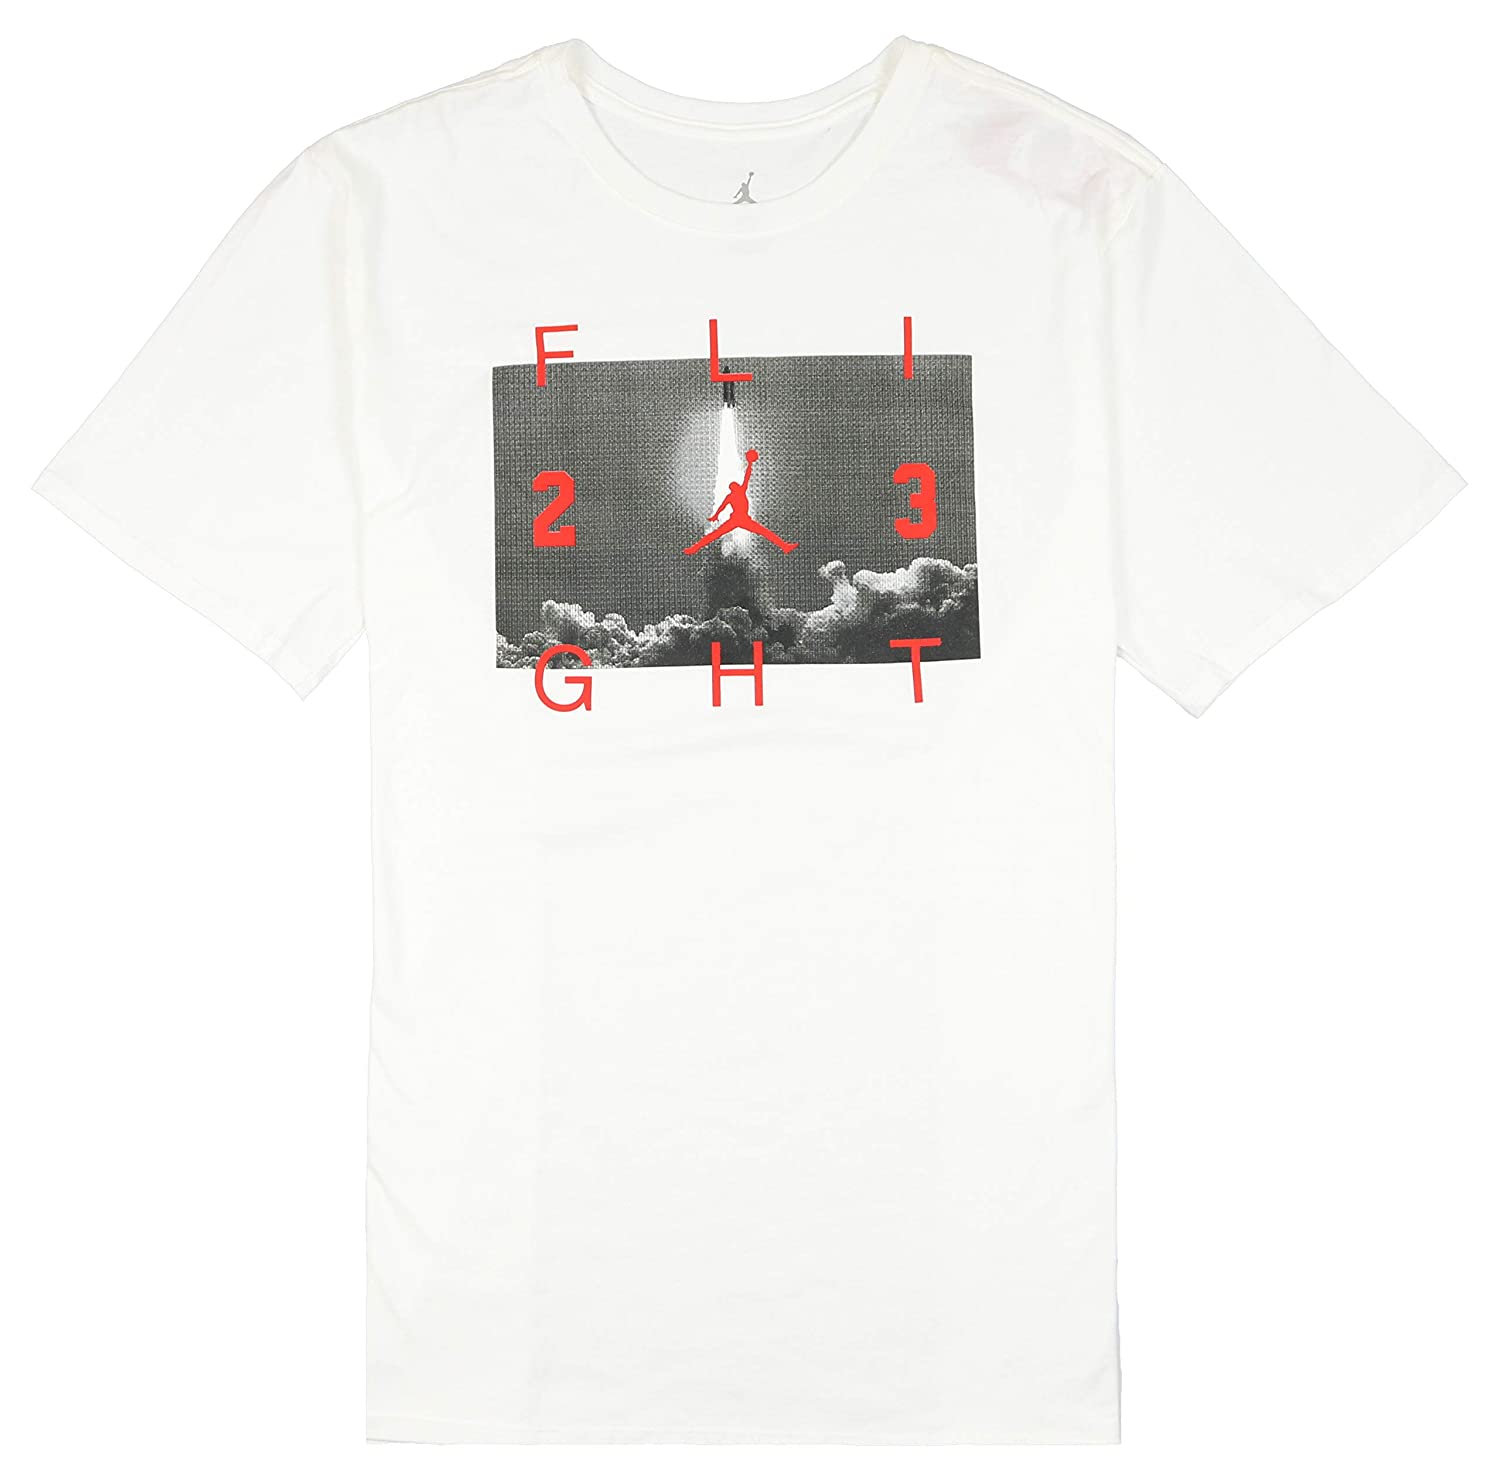 0f67f75f02f4ab Amazon.com  Nike Jordan Men s Flight 23 Lift Off T-Shirt Medium White Red   Sports   Outdoors